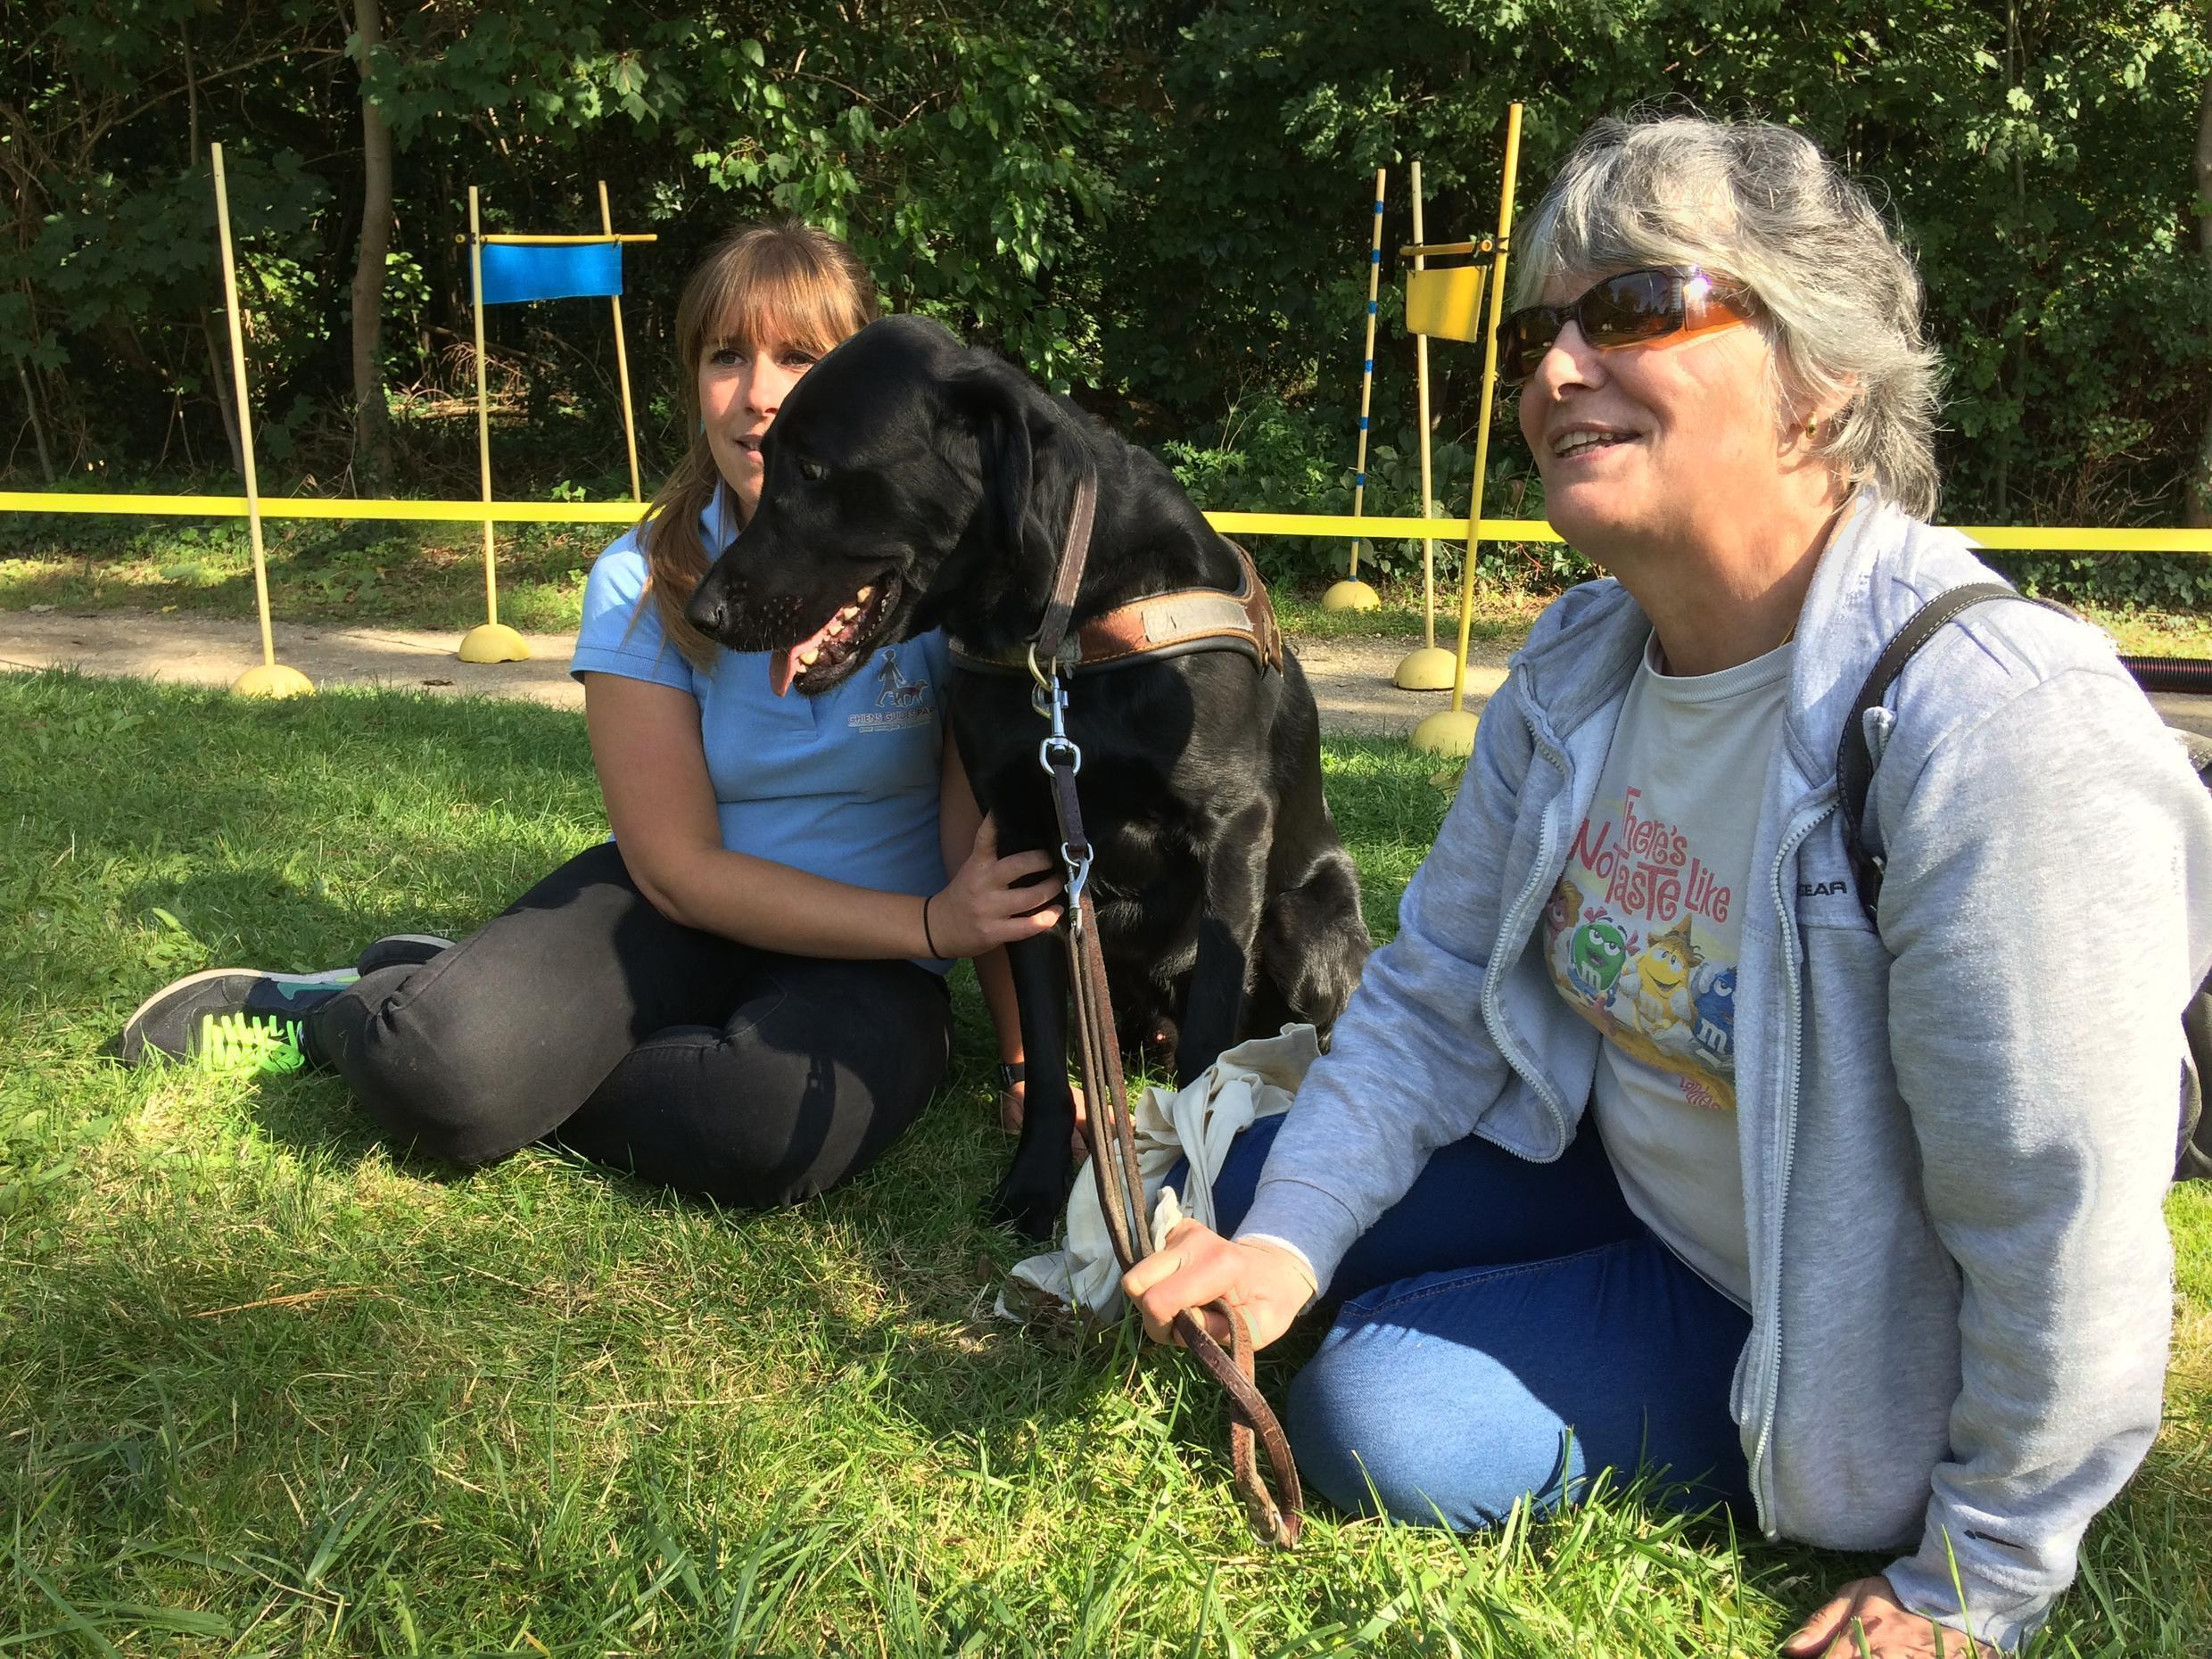 Murielle Le Paysan (right) with her dog Joba and his instructor Emilie at the Paris Guide Dog school